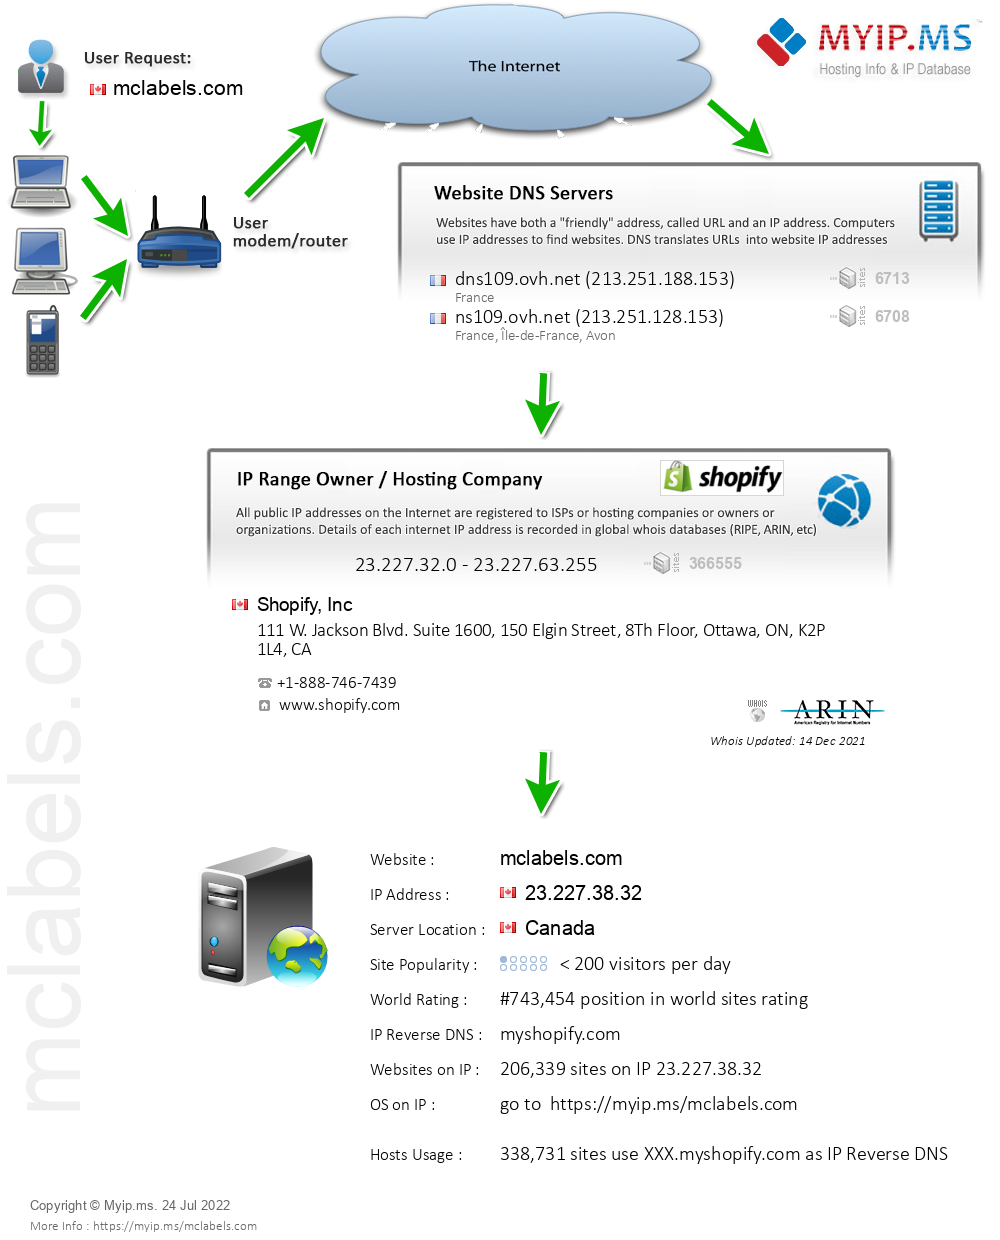 Mclabels.com - Website Hosting Visual IP Diagram